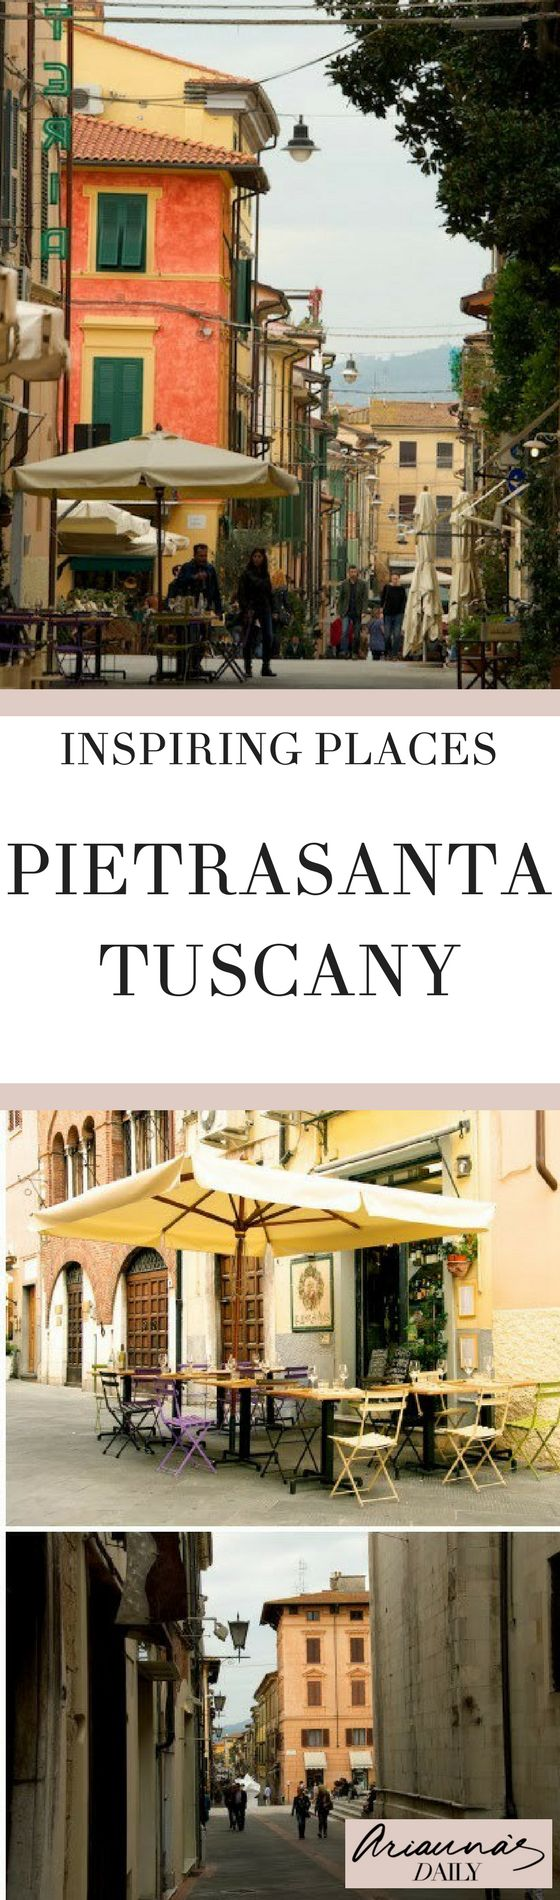 Looking for somewhere inspiring to visit on your Tuscany trip? Why not try Pietrasanta - A historic medieval and artistic town in northern Tuscany, it is also known as the 'city of artists' or 'small Athens' for its marble studios and beautiful monuments. #tuscany #travelblogger #pietrasanta